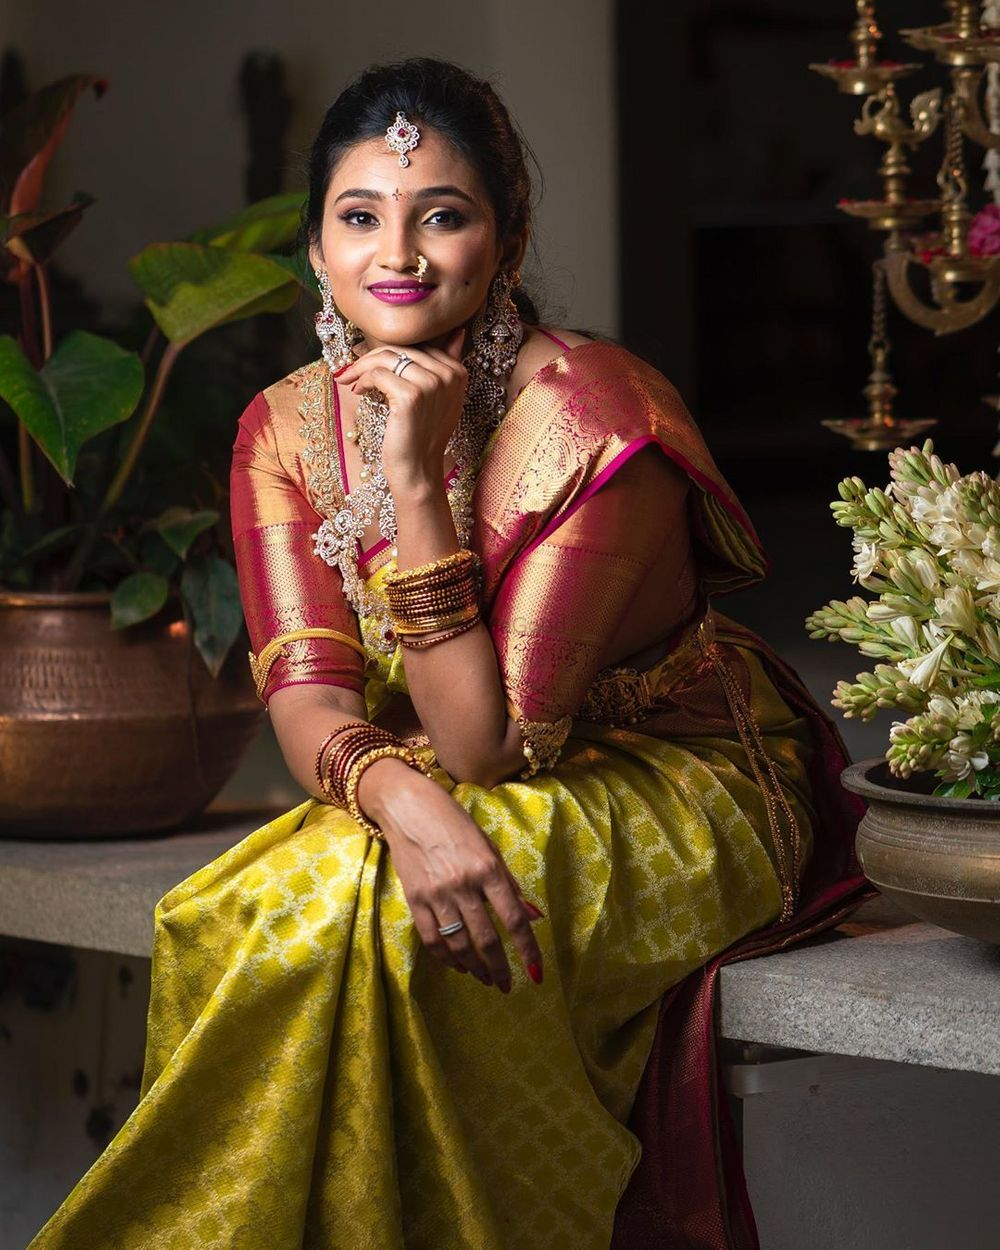 Photo of South Indian bride wearing a green saree with a molten red blouse.